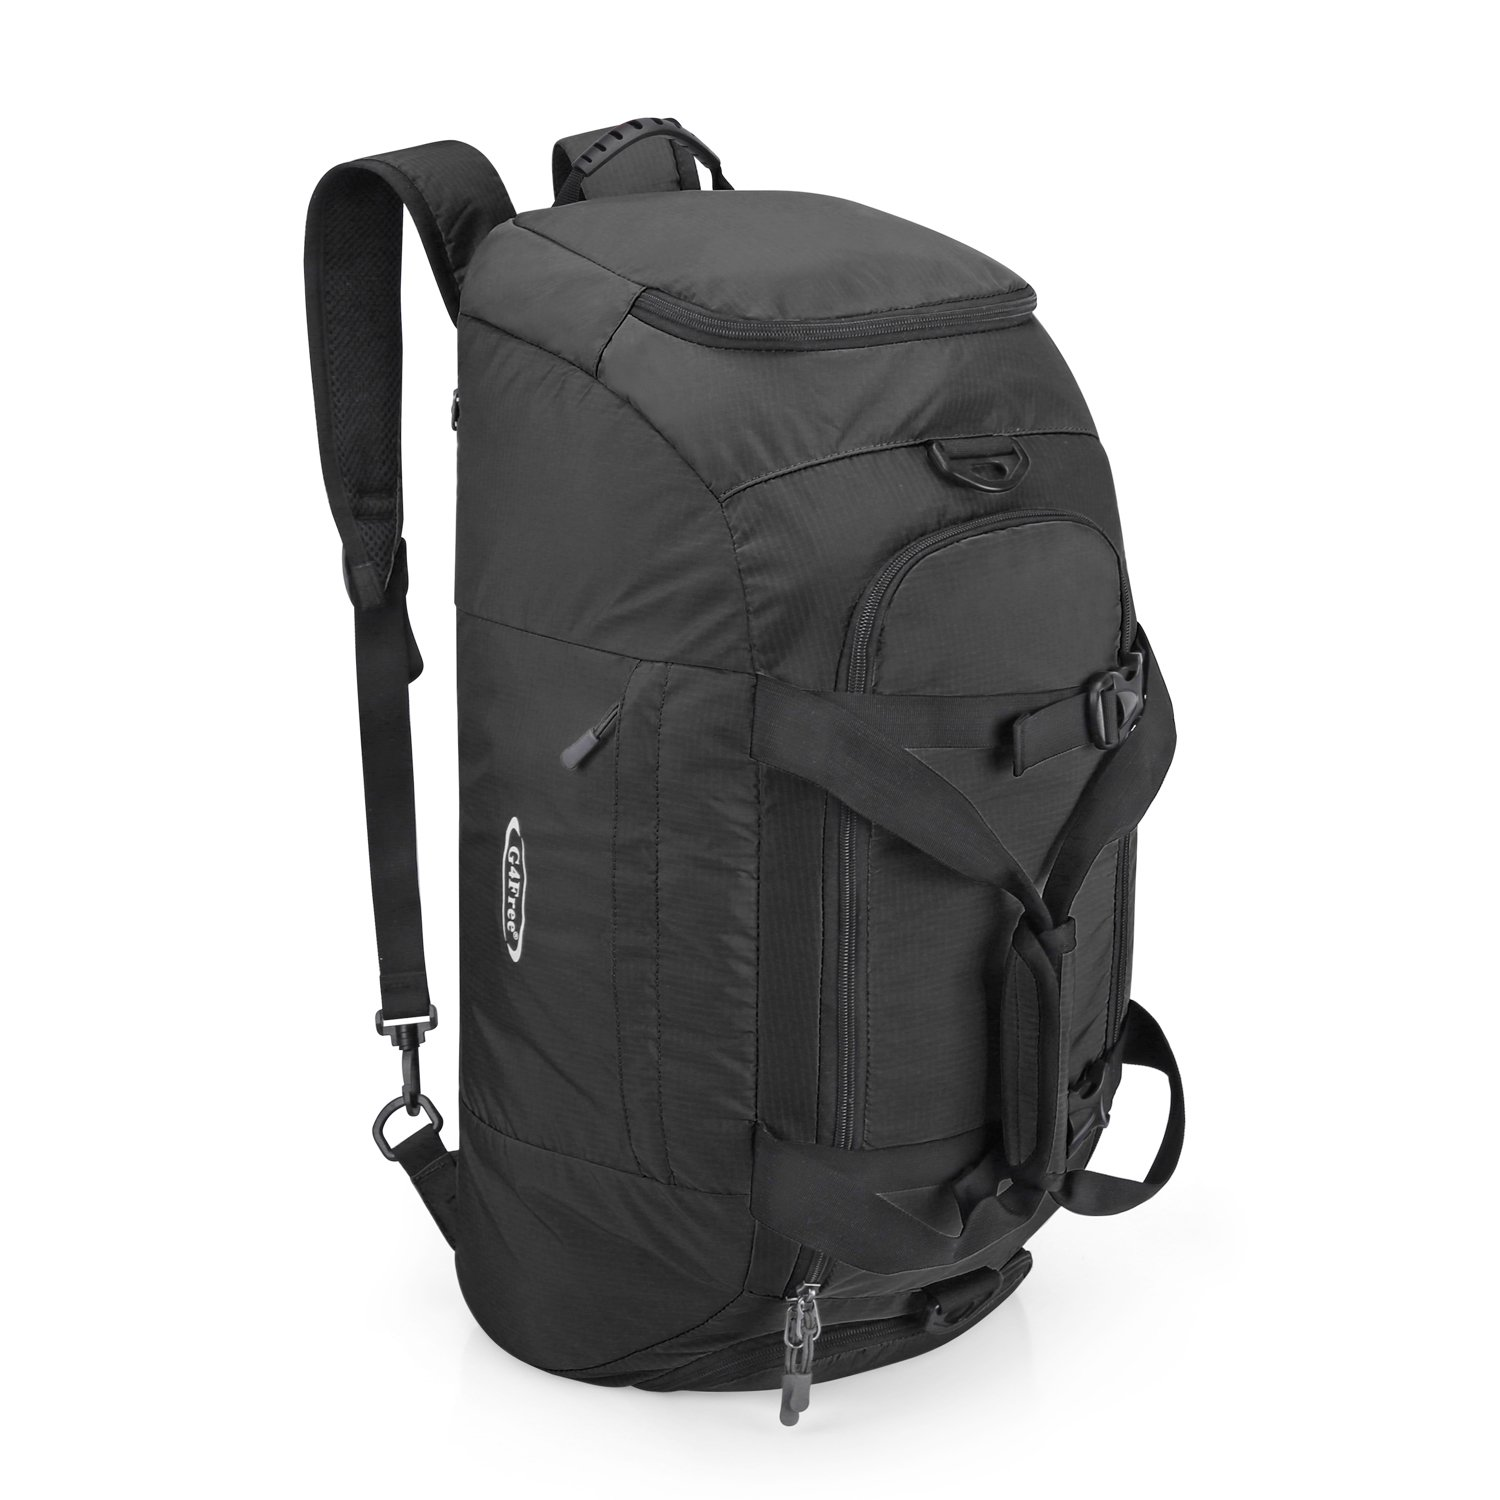 f0a65c197186 High Sierra At8 26 Duffle Backpack- Fenix Toulouse Handball